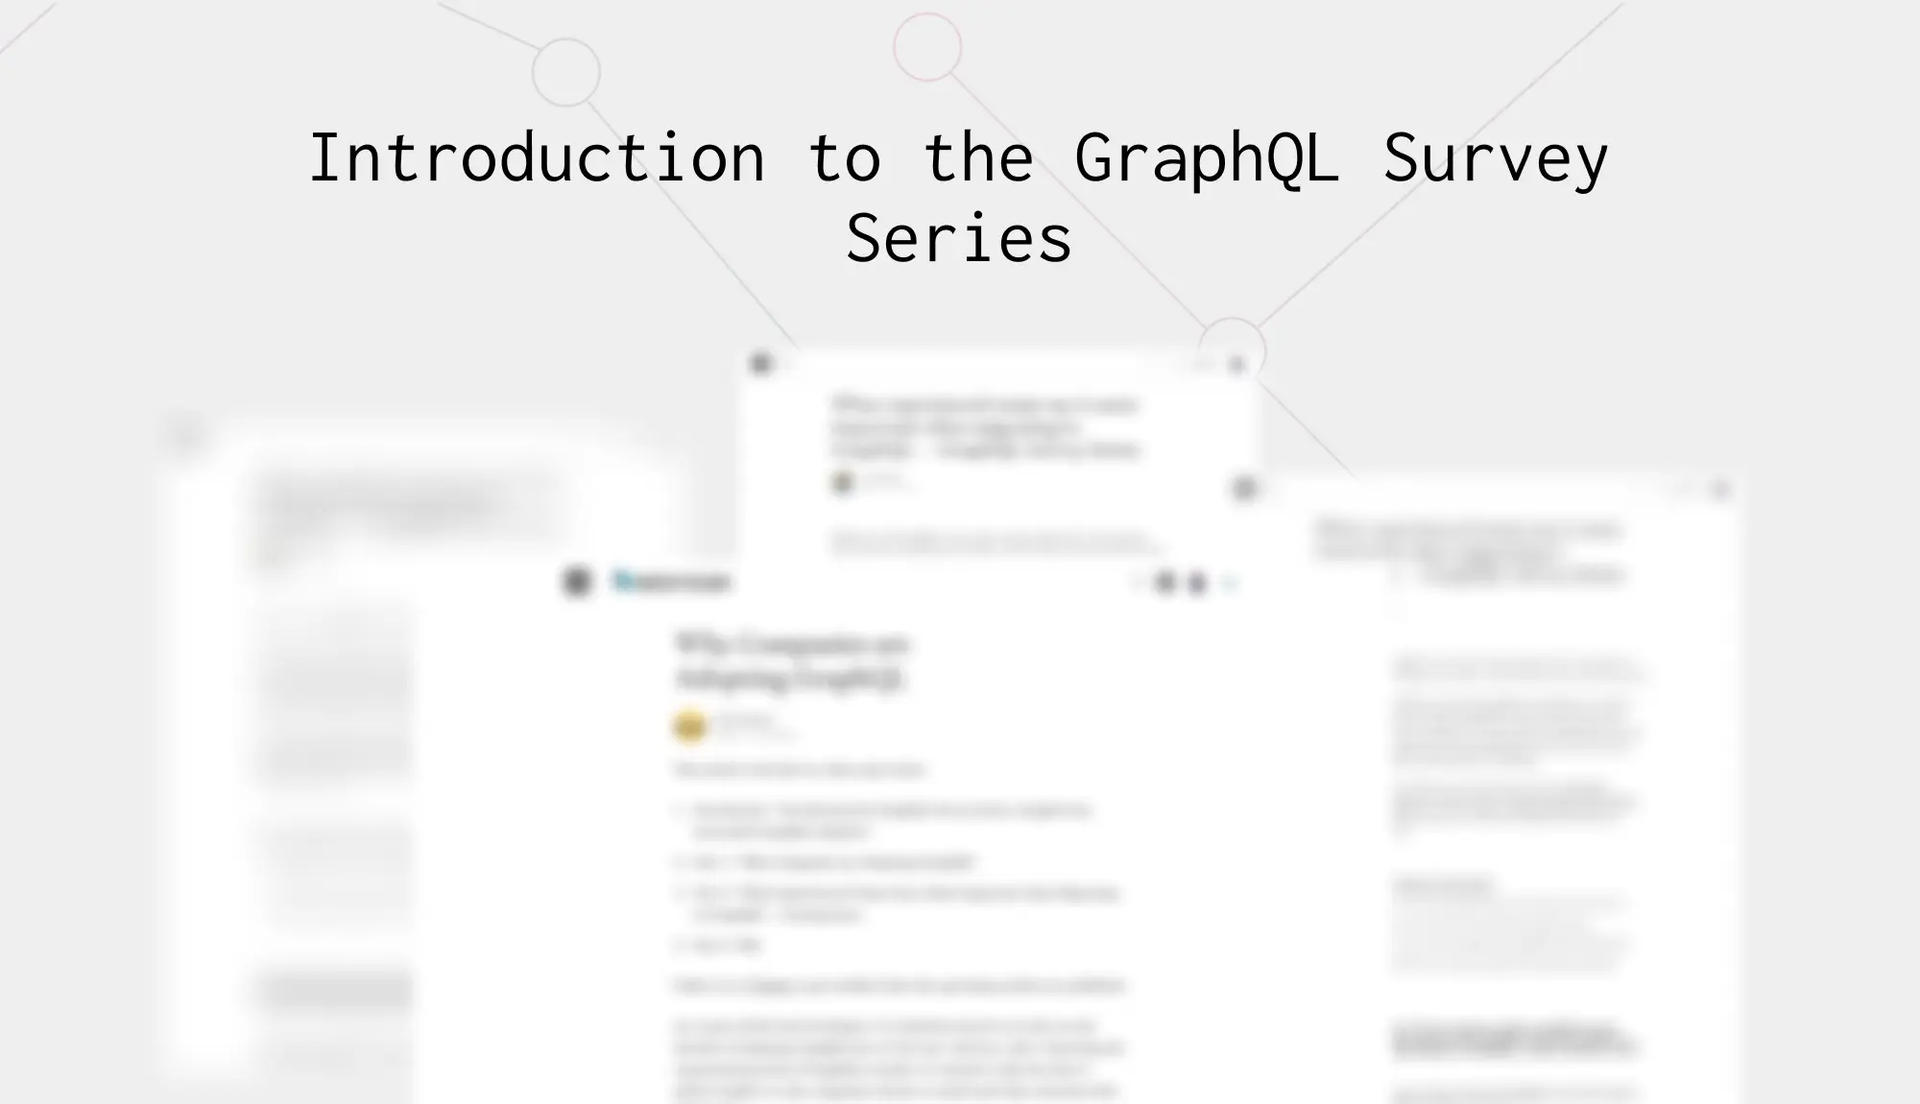 Introducing the GraphQL Survey Series: Insight from Successful GraphQL Adopters